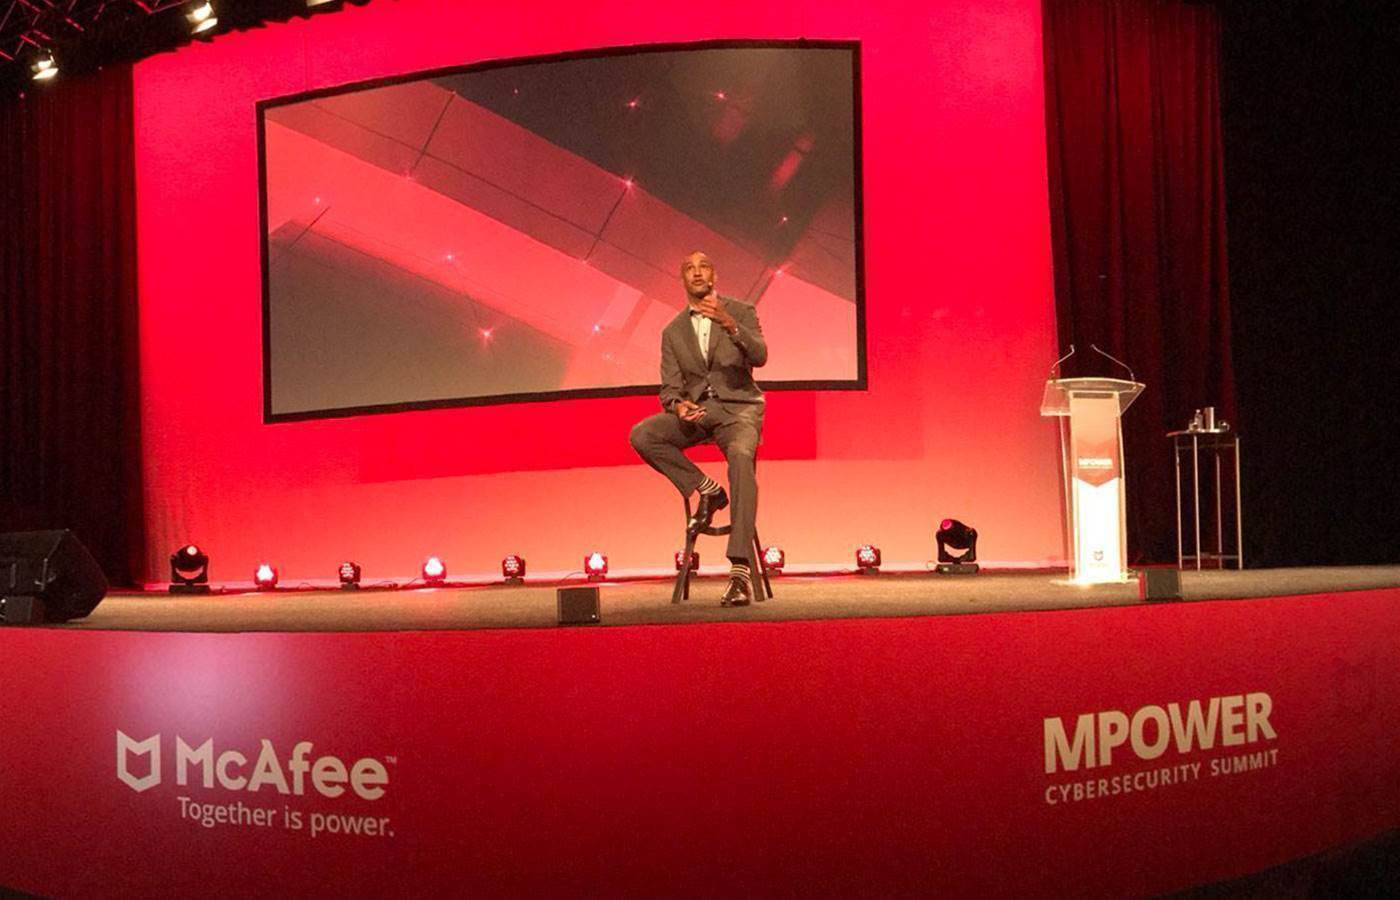 McAfee names Dimension Data as its top Australian partner